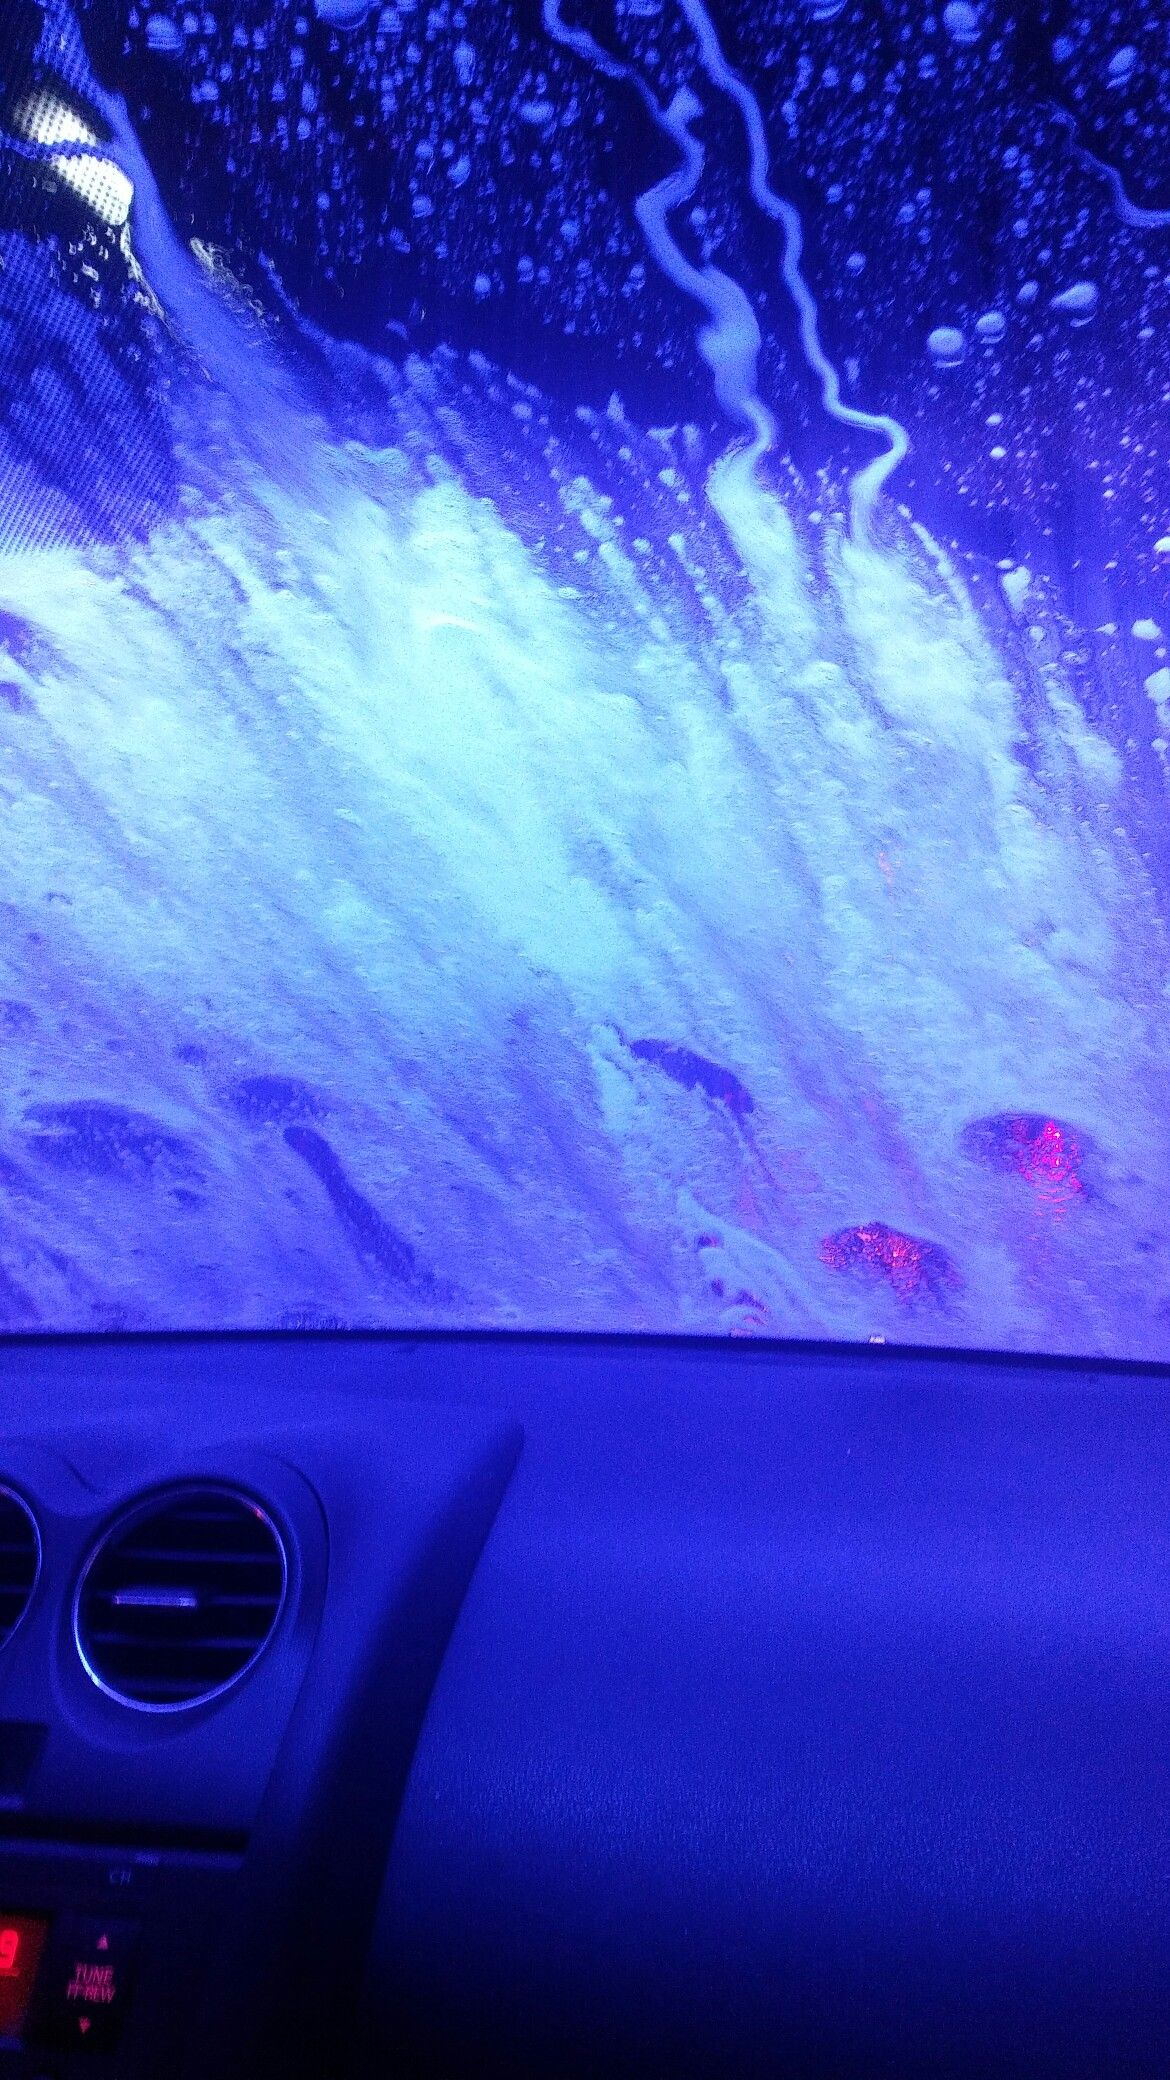 I tried to do an aesthetic at the carwash earlier car